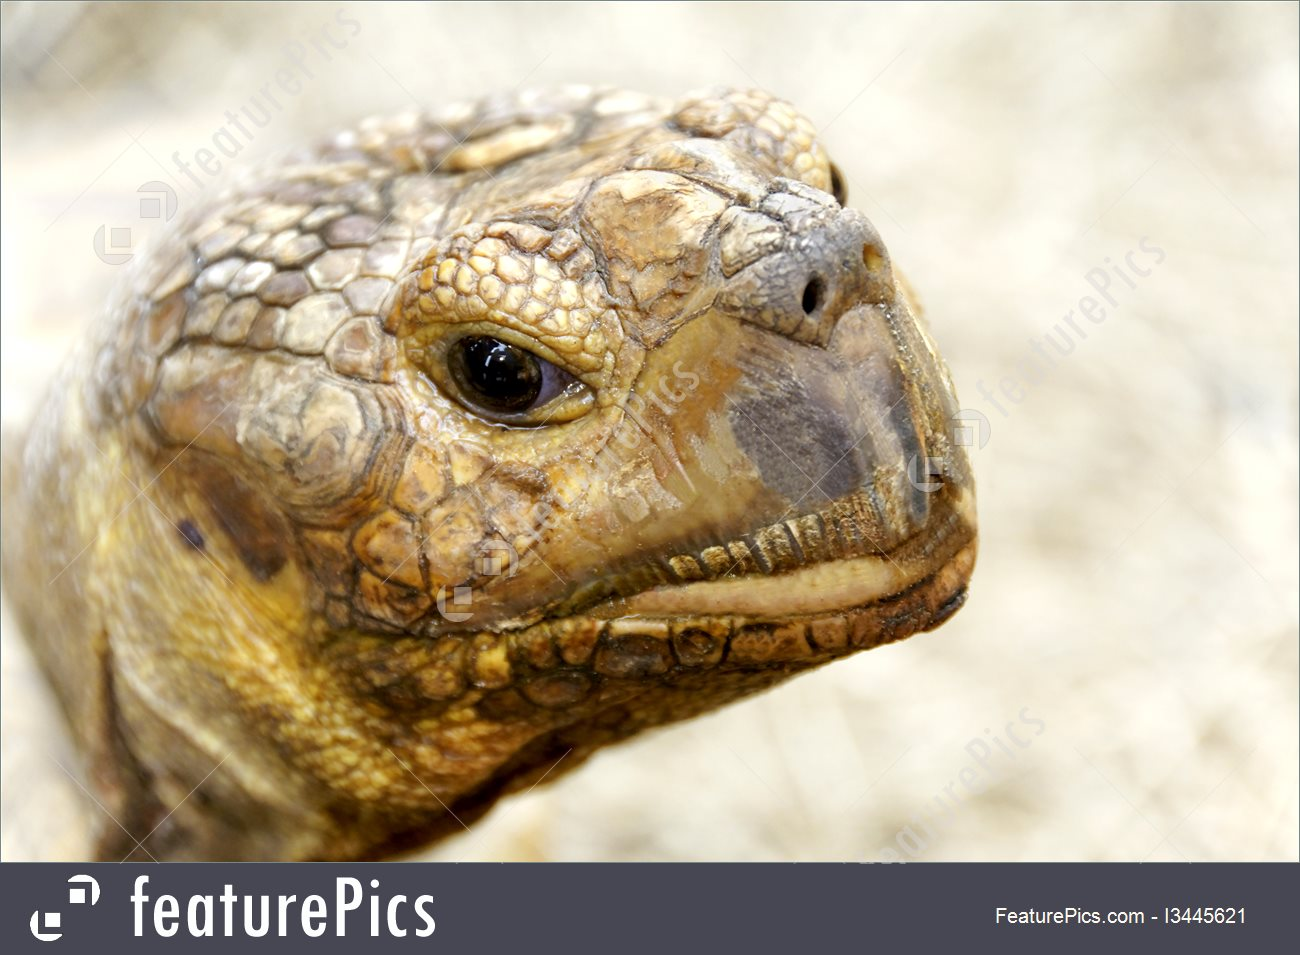 Photo Of African Spurred Tortoise Head.